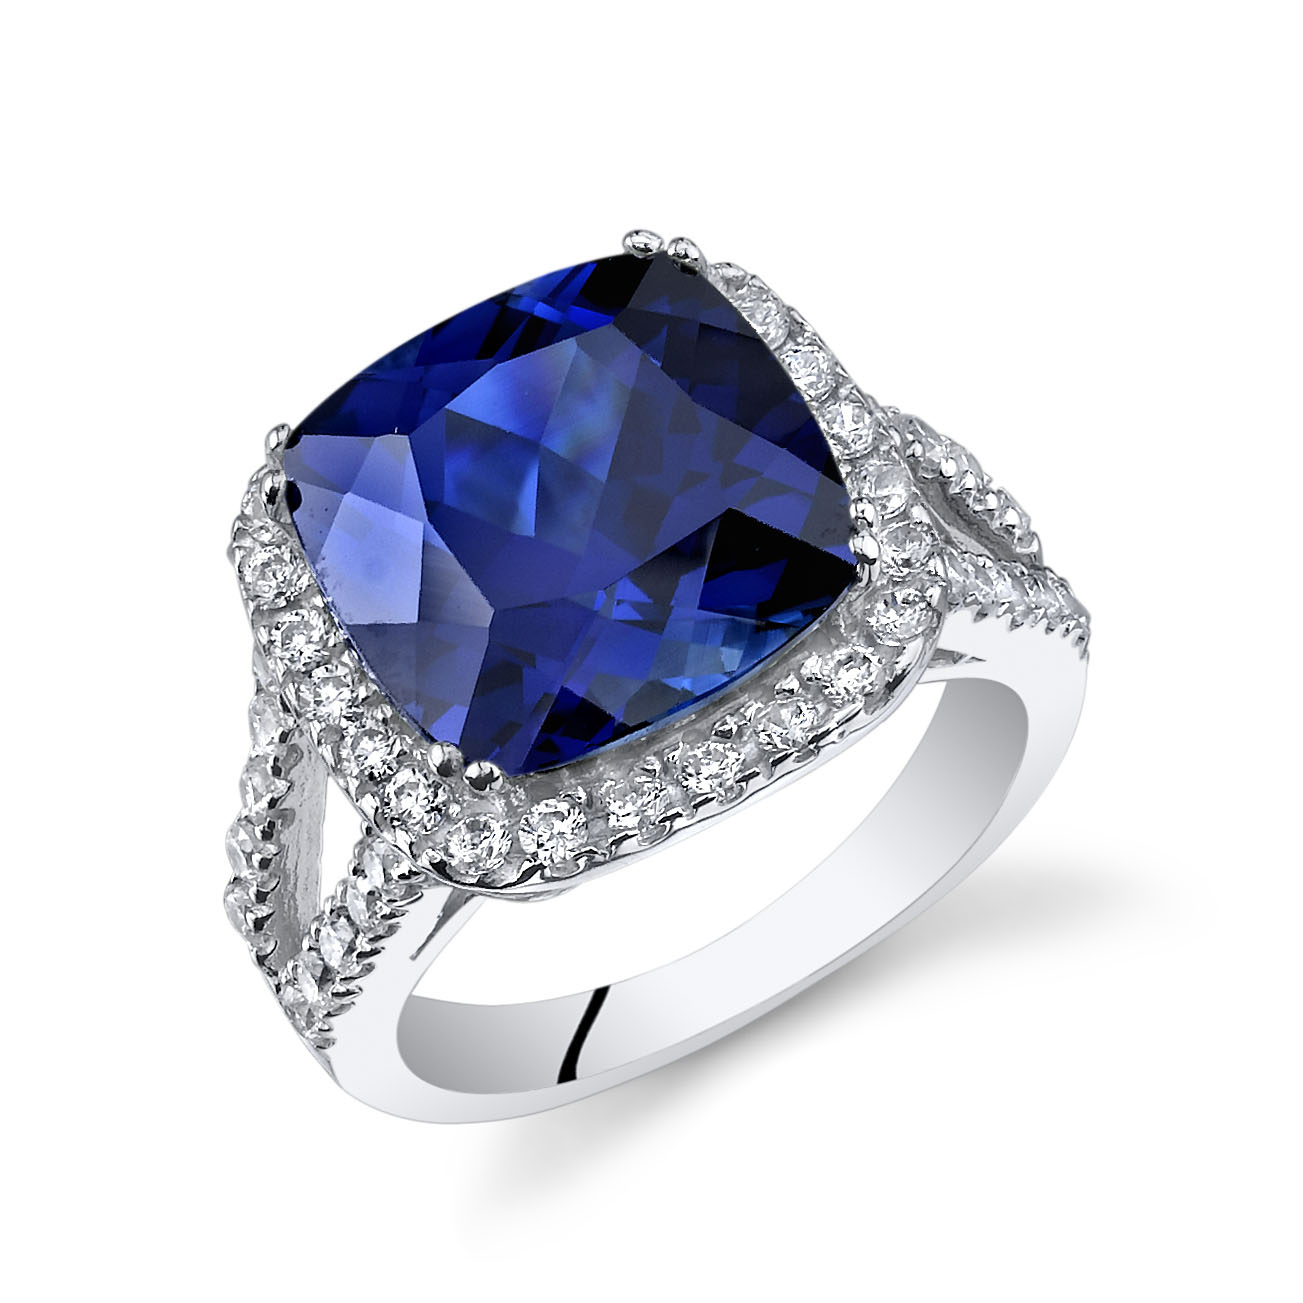 Cushion Cut Sapphire & CZ Ring in Sterling Silver